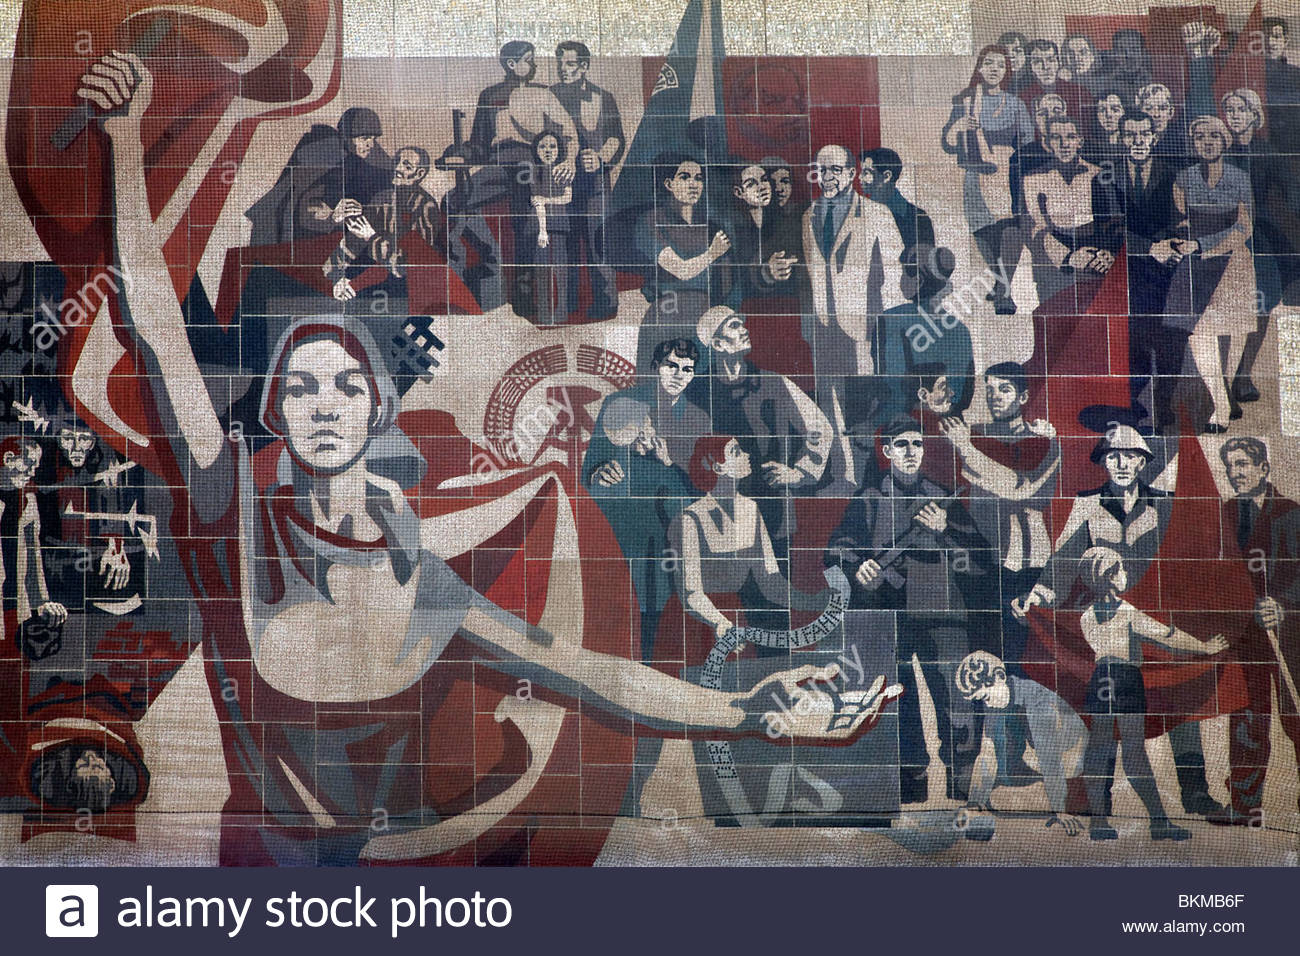 Communist propaganda mural on the wall of the Kulturpalast in Dresden, Germany. - Stock Image